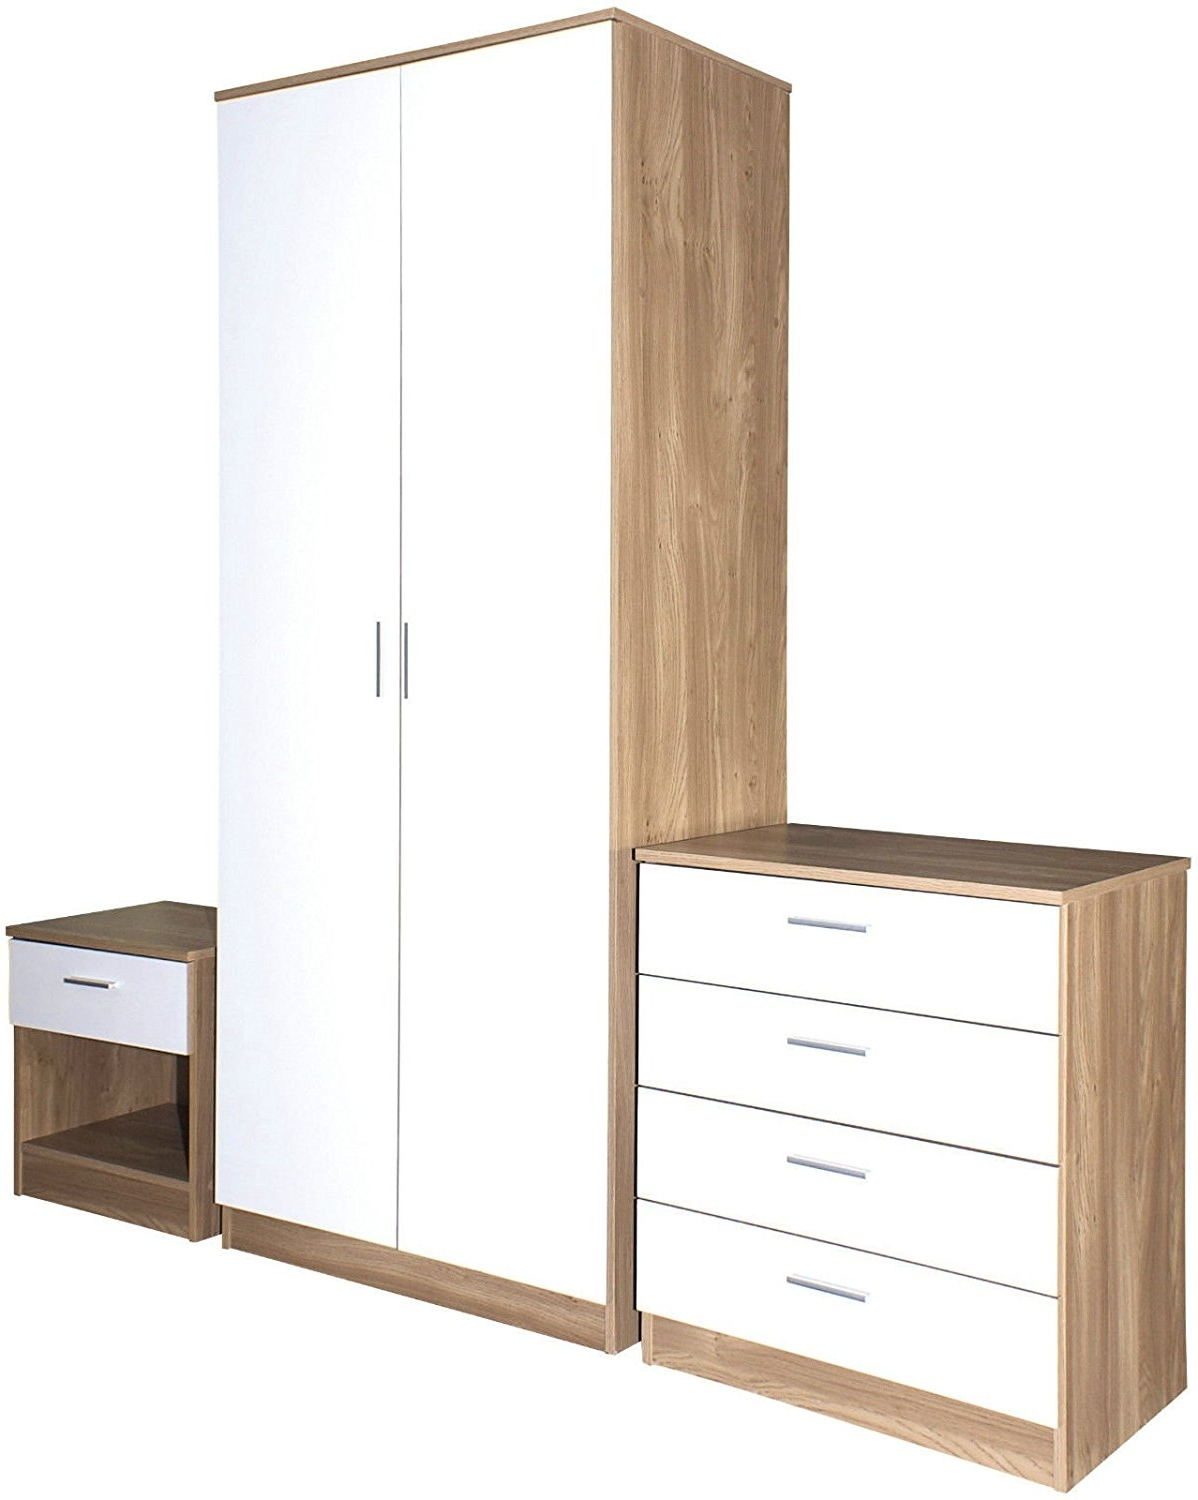 Newest Trio White High Gloss & Oak Frame 3 Piece Bedroom Furniture Set In Cheap Wardrobes And Chest Of Drawers (View 12 of 15)